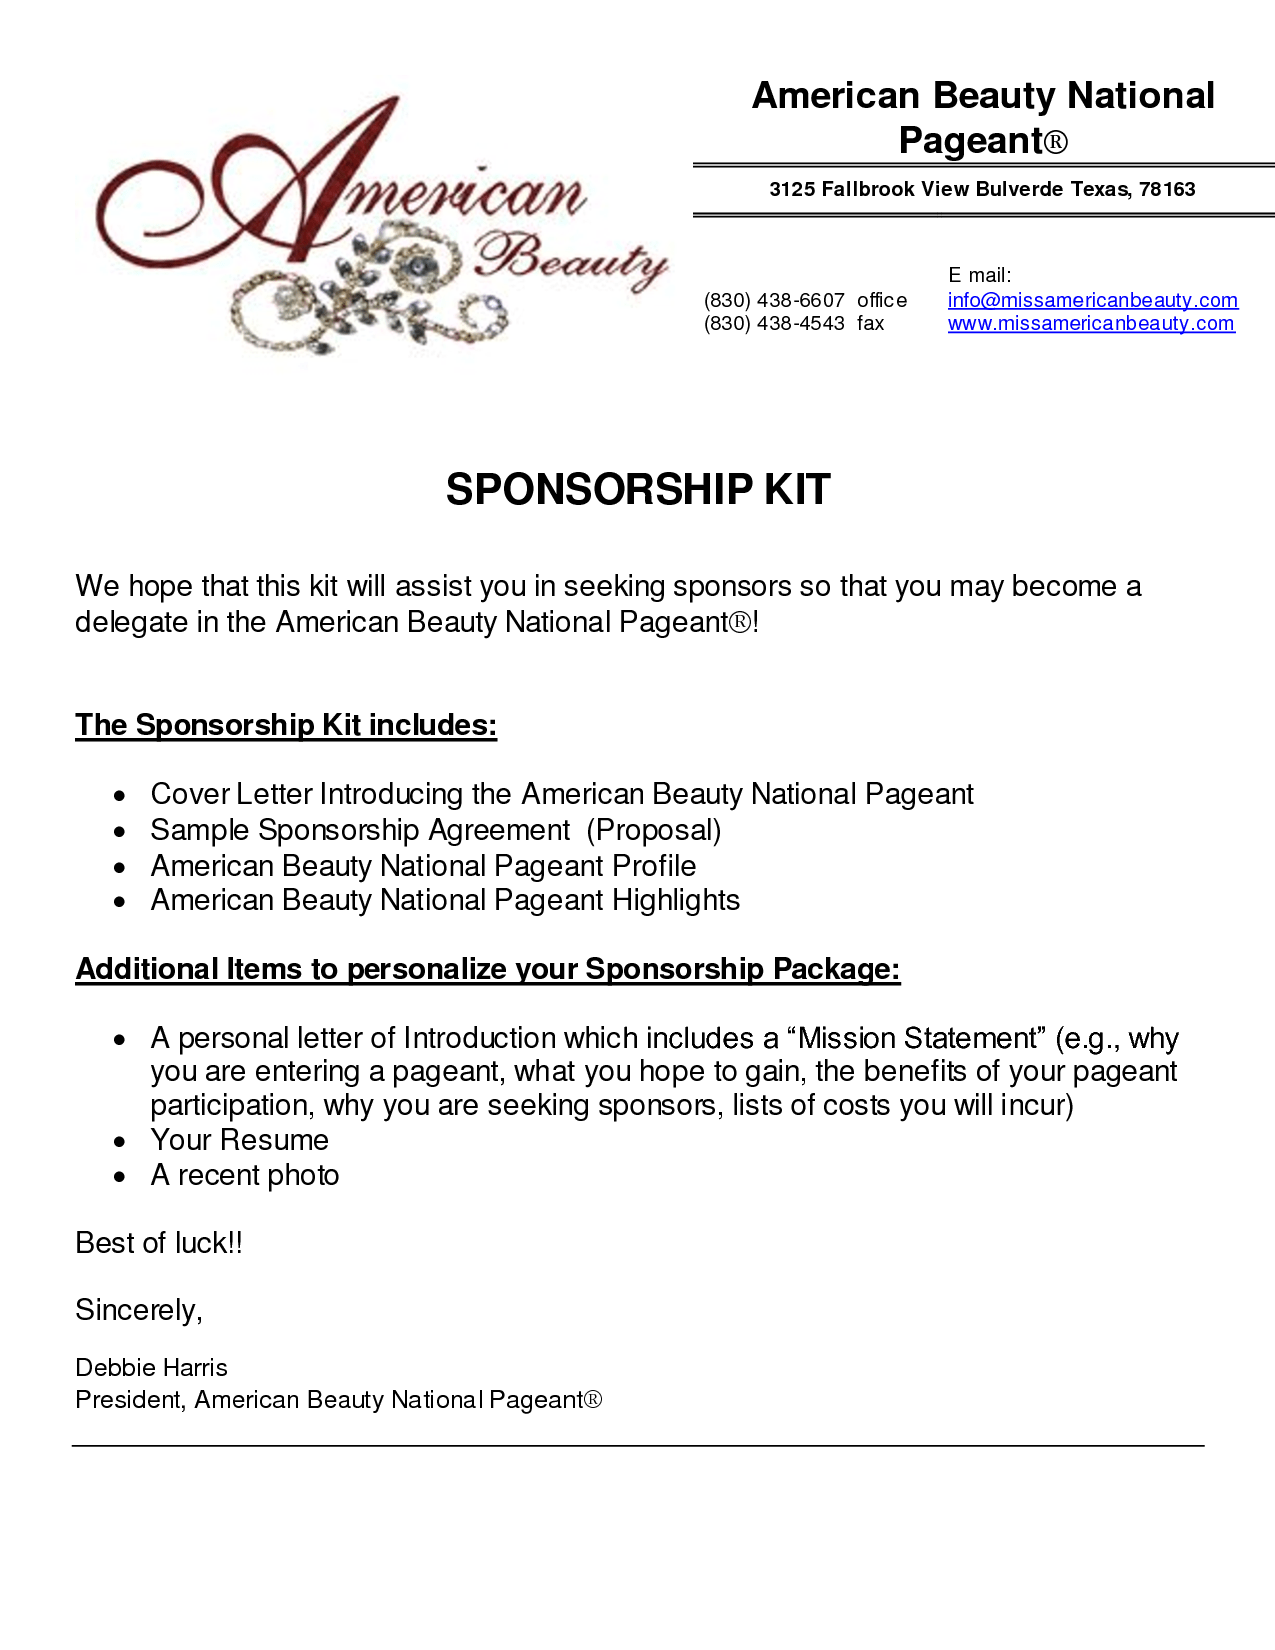 6 Sponsorship Proposal Templates Excel PDF Formats – Sample of a Sponsorship Proposal